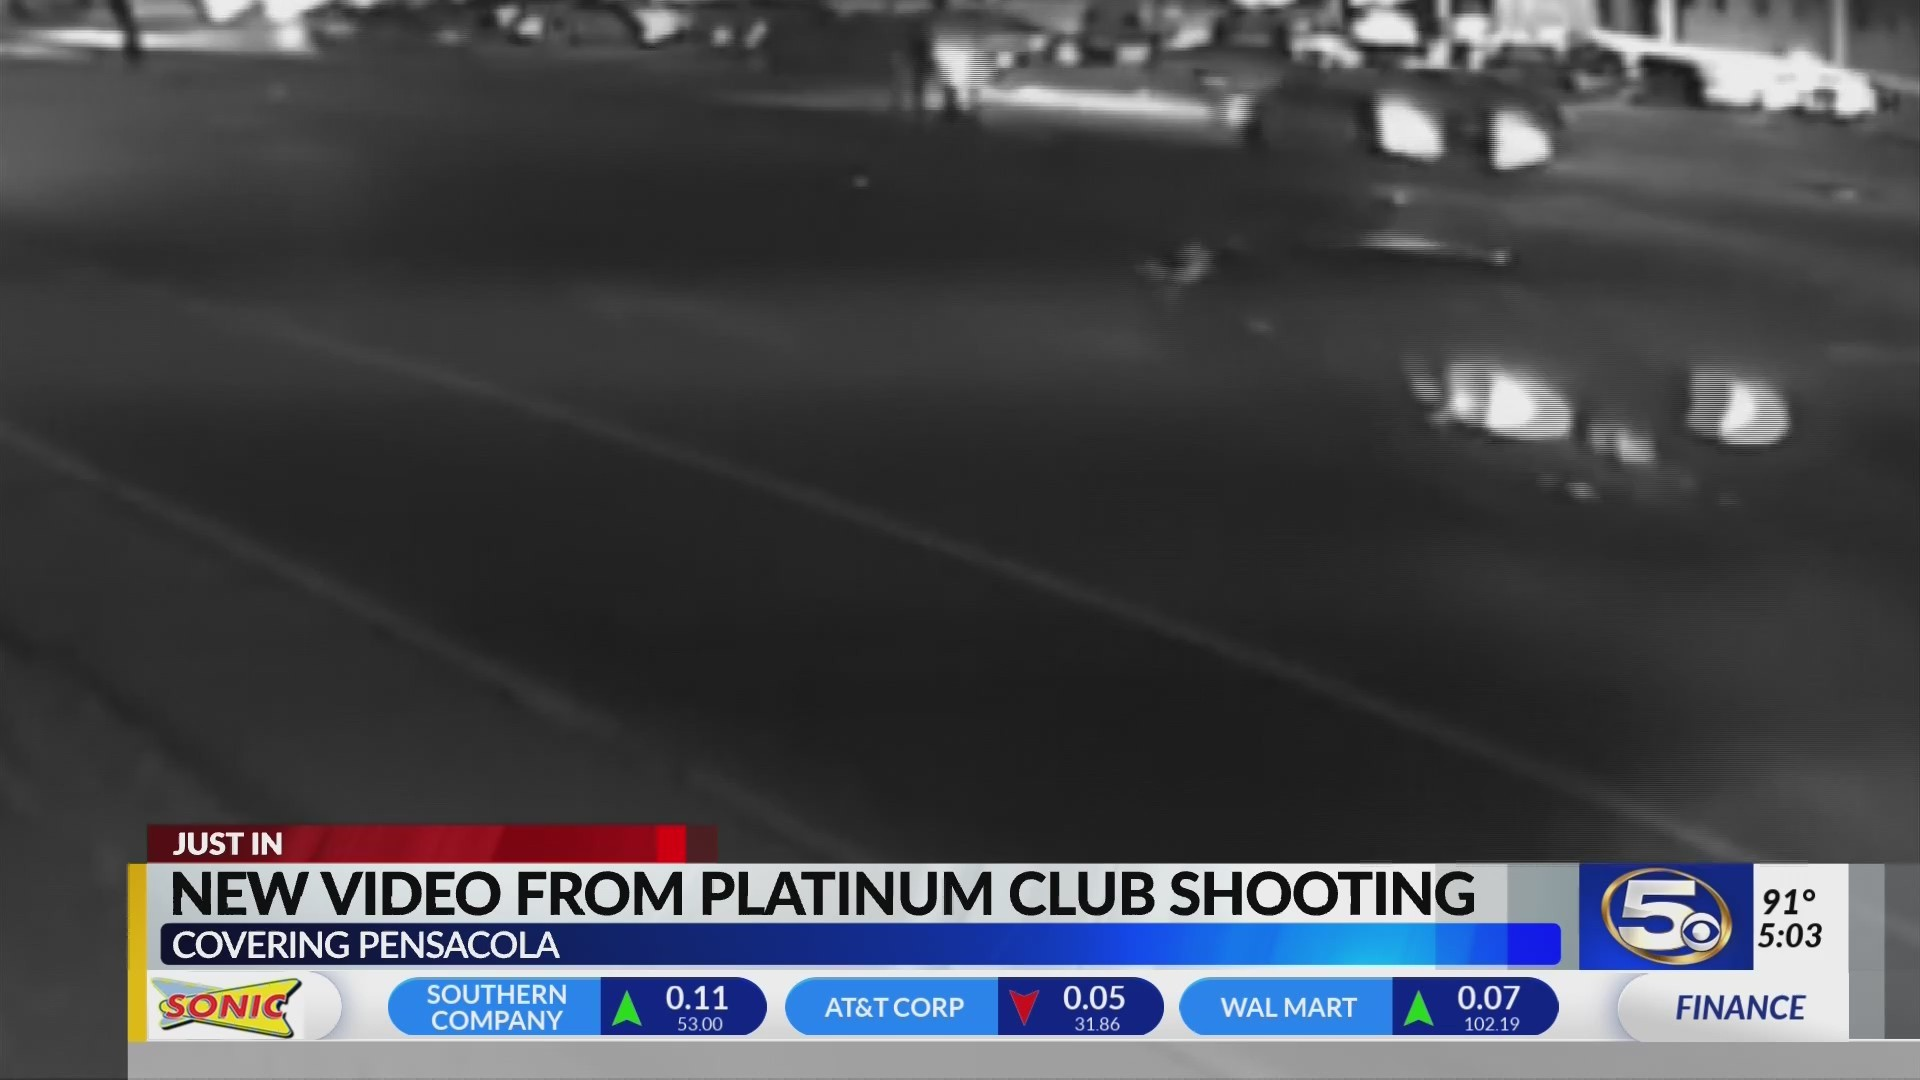 VIDEO: New video from deadly Platinum Club shooting in Pensacola